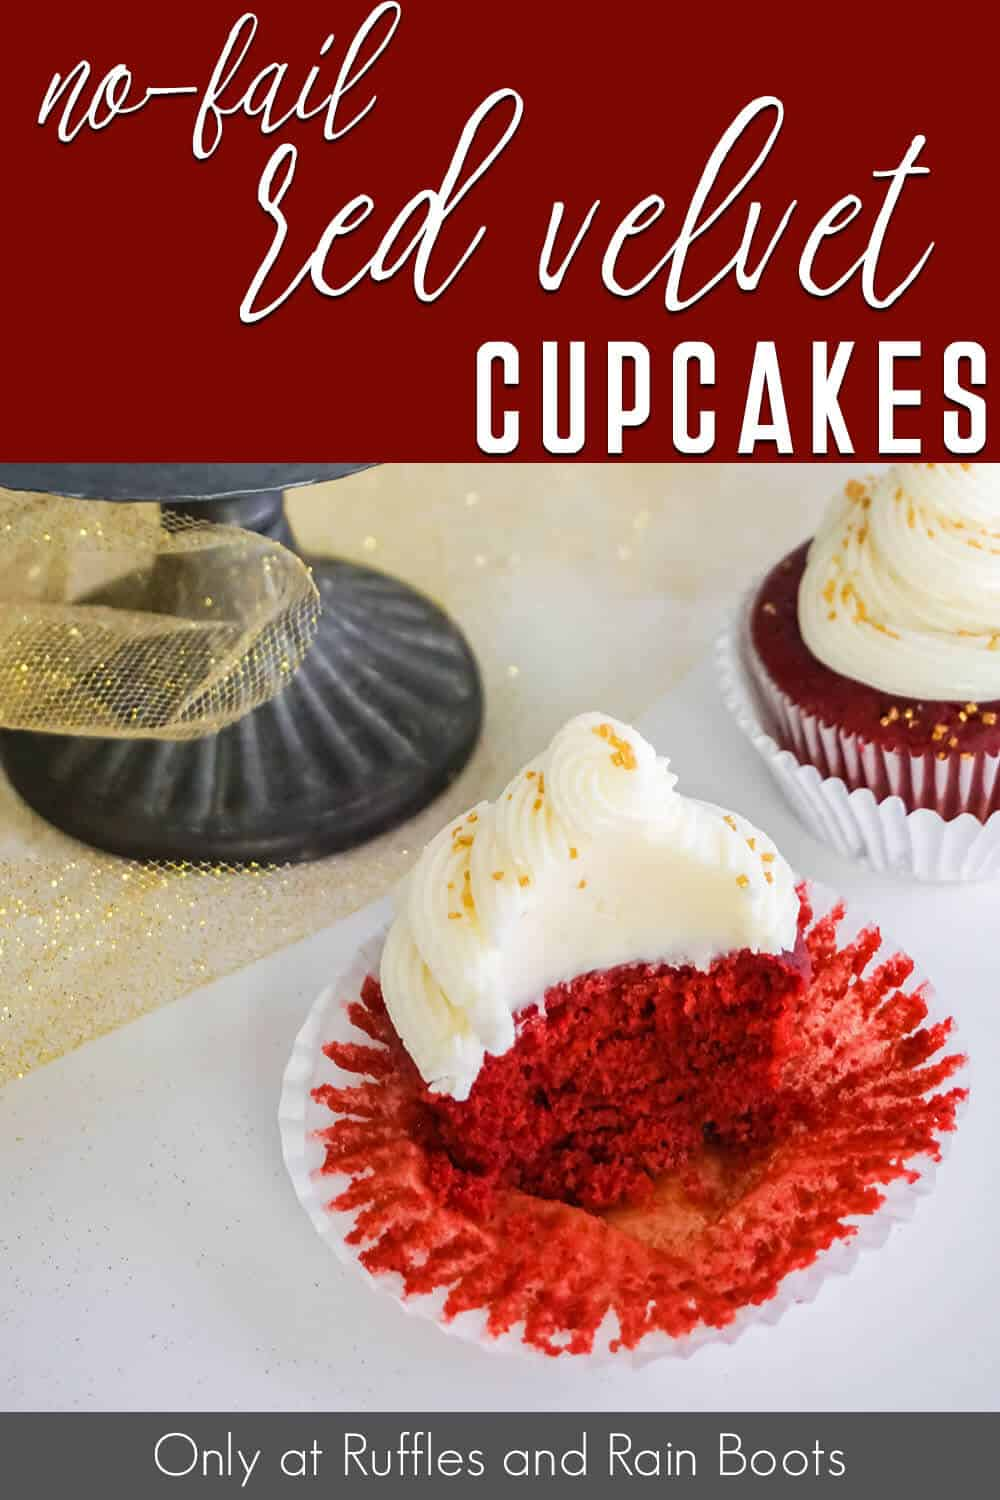 side view of red velvet cupcake cut open with text which reads no-fail red velvet cupcakes